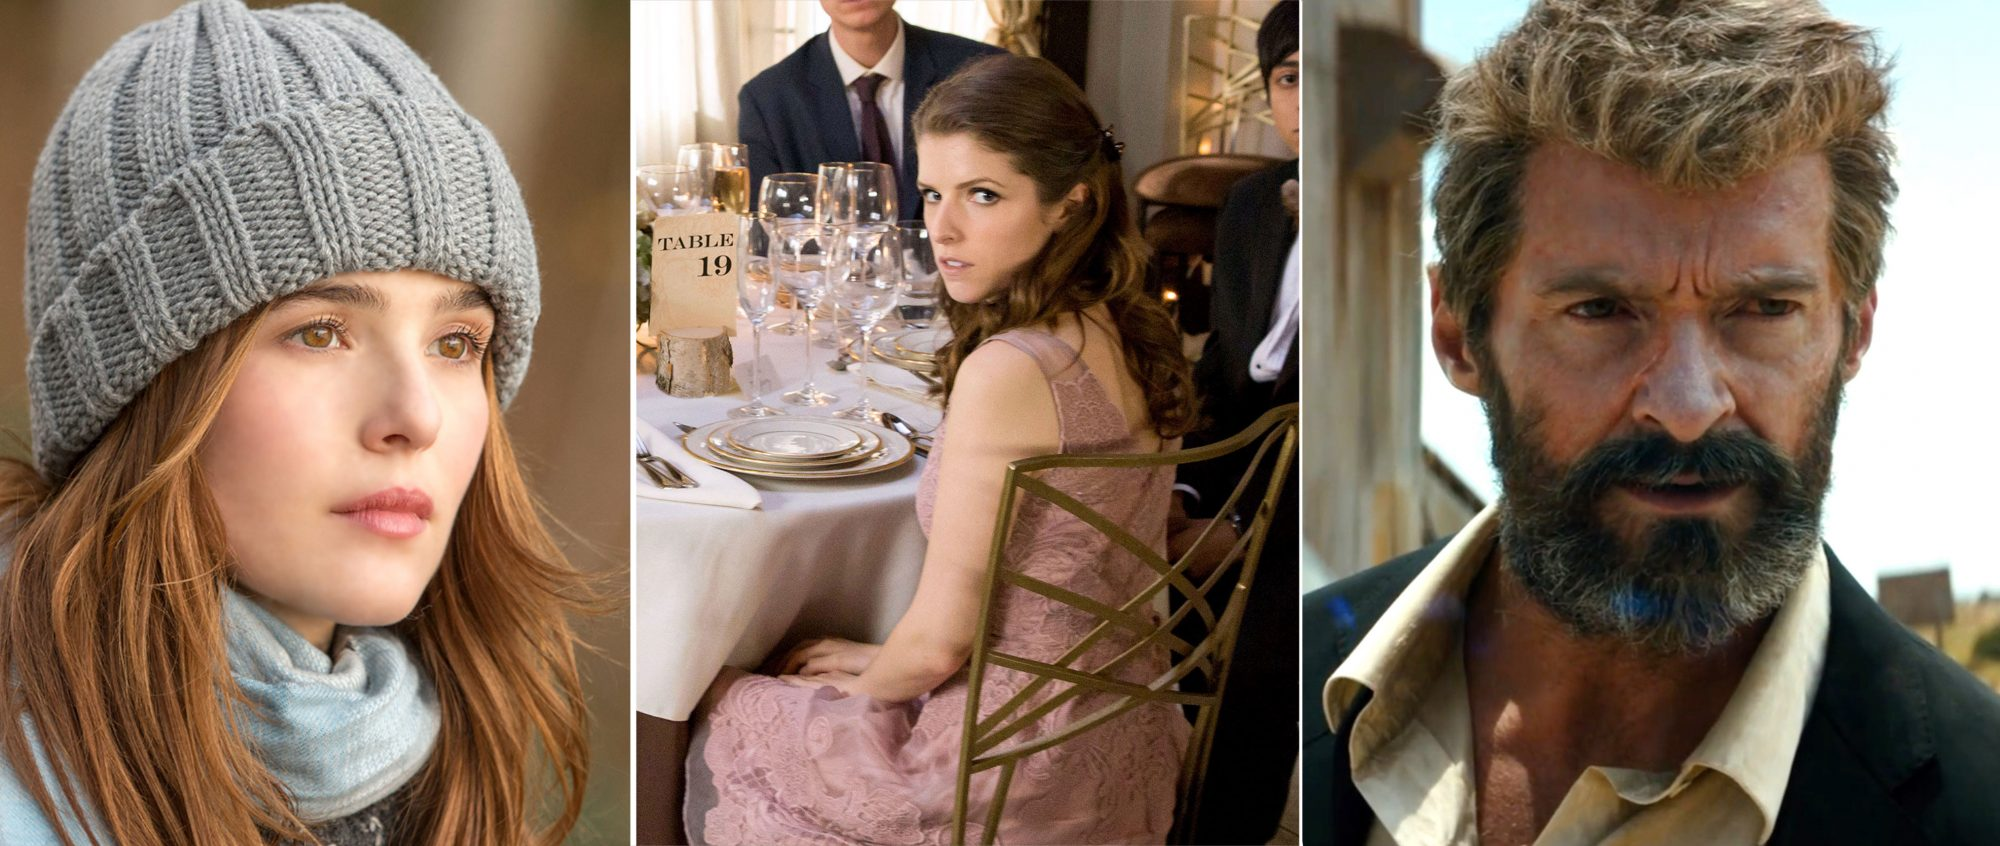 Before I Fall, Table 19, and Logan